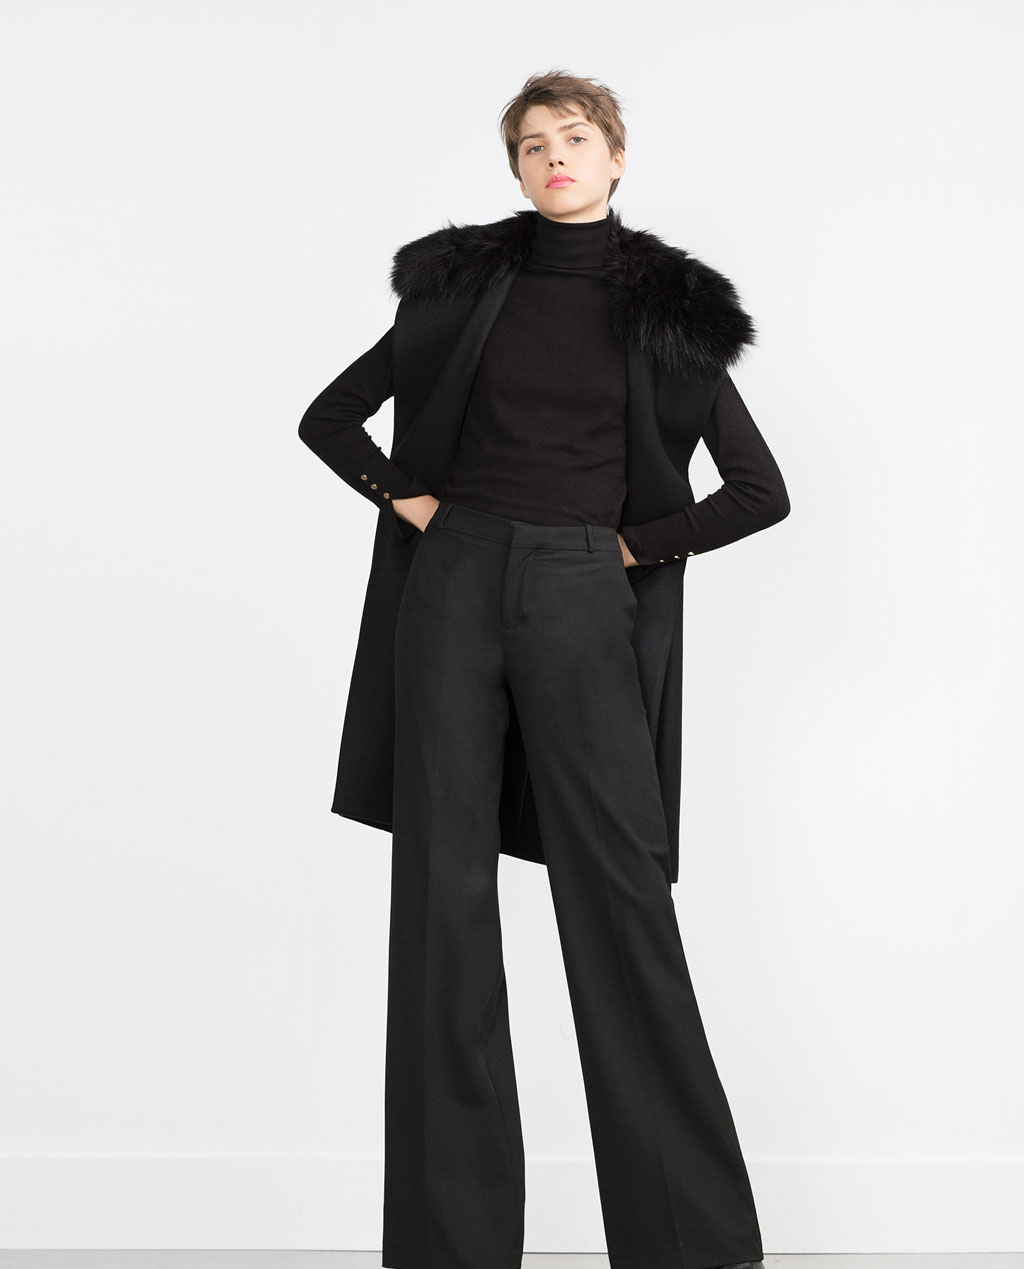 ZARA Women's Faux Fur Coat. Last seen for $96 ZARA Women's Fur Coats ZARA Women's Coats All Women's fur coats All Women's fur coats Price can drop! Are you waiting for sale? We will tell you, when price on this product drops. Submit. Get back in stock .